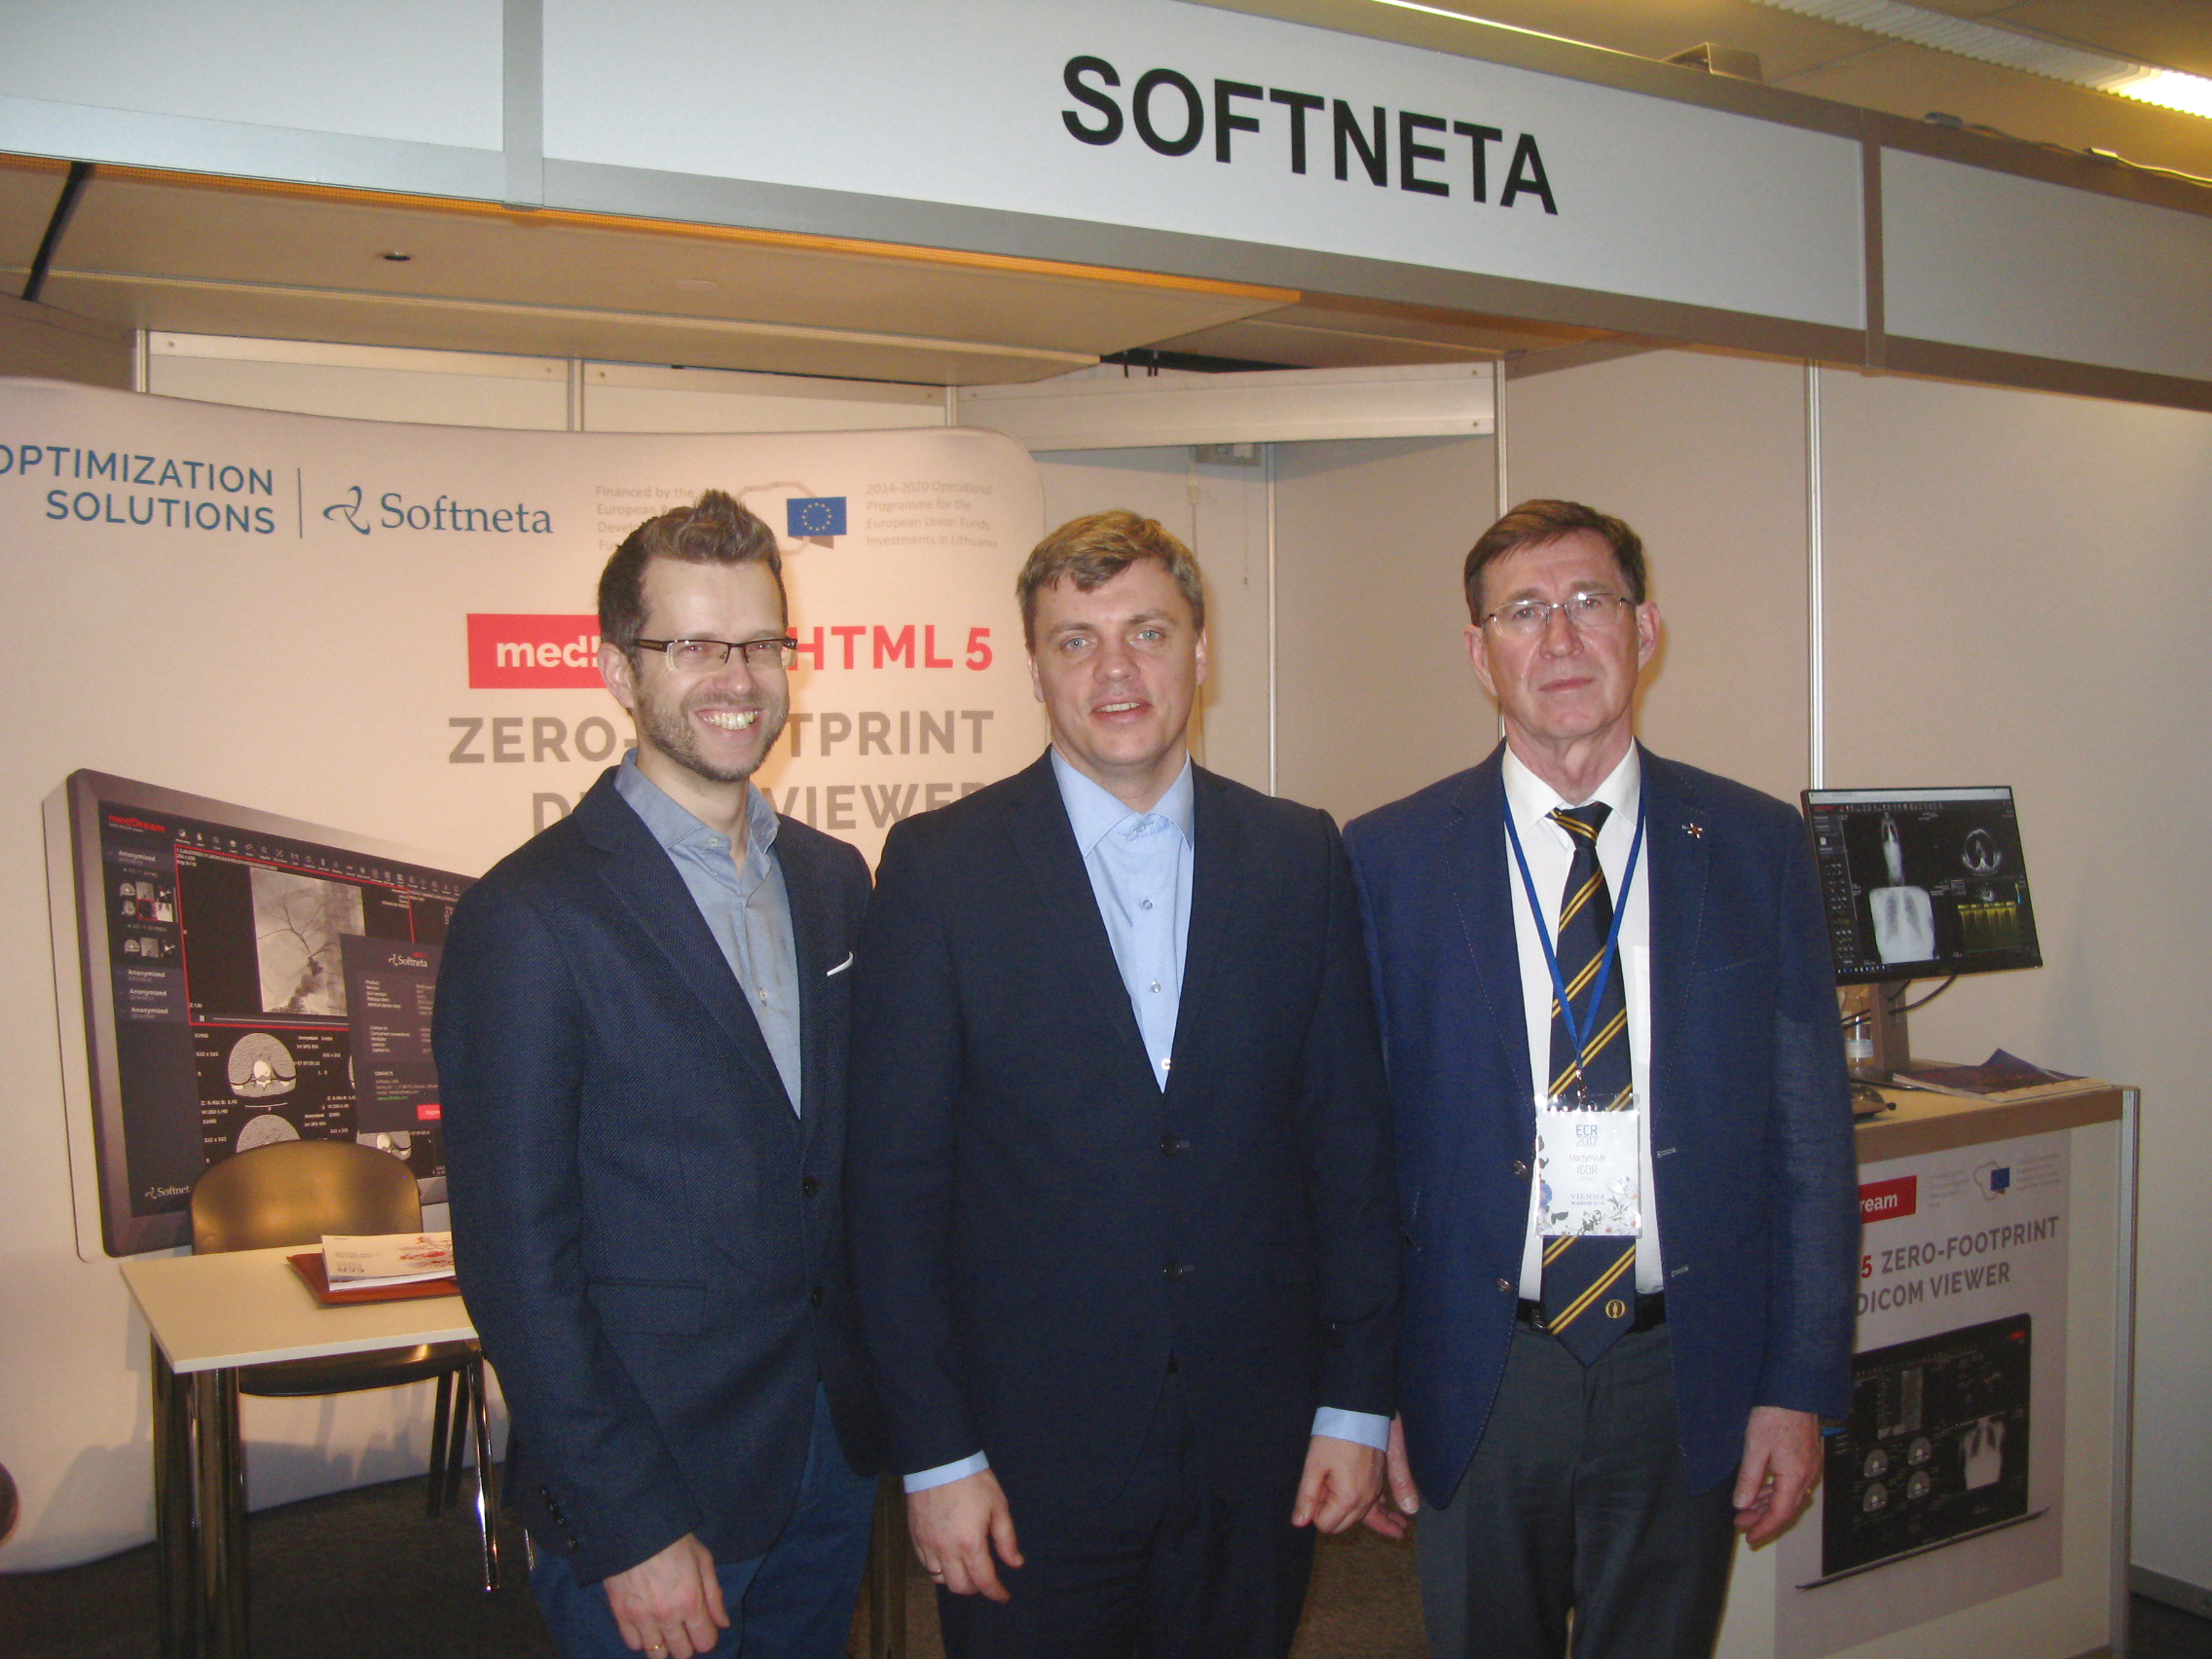 SOFTNETA dicom viewer in exhibition ECR